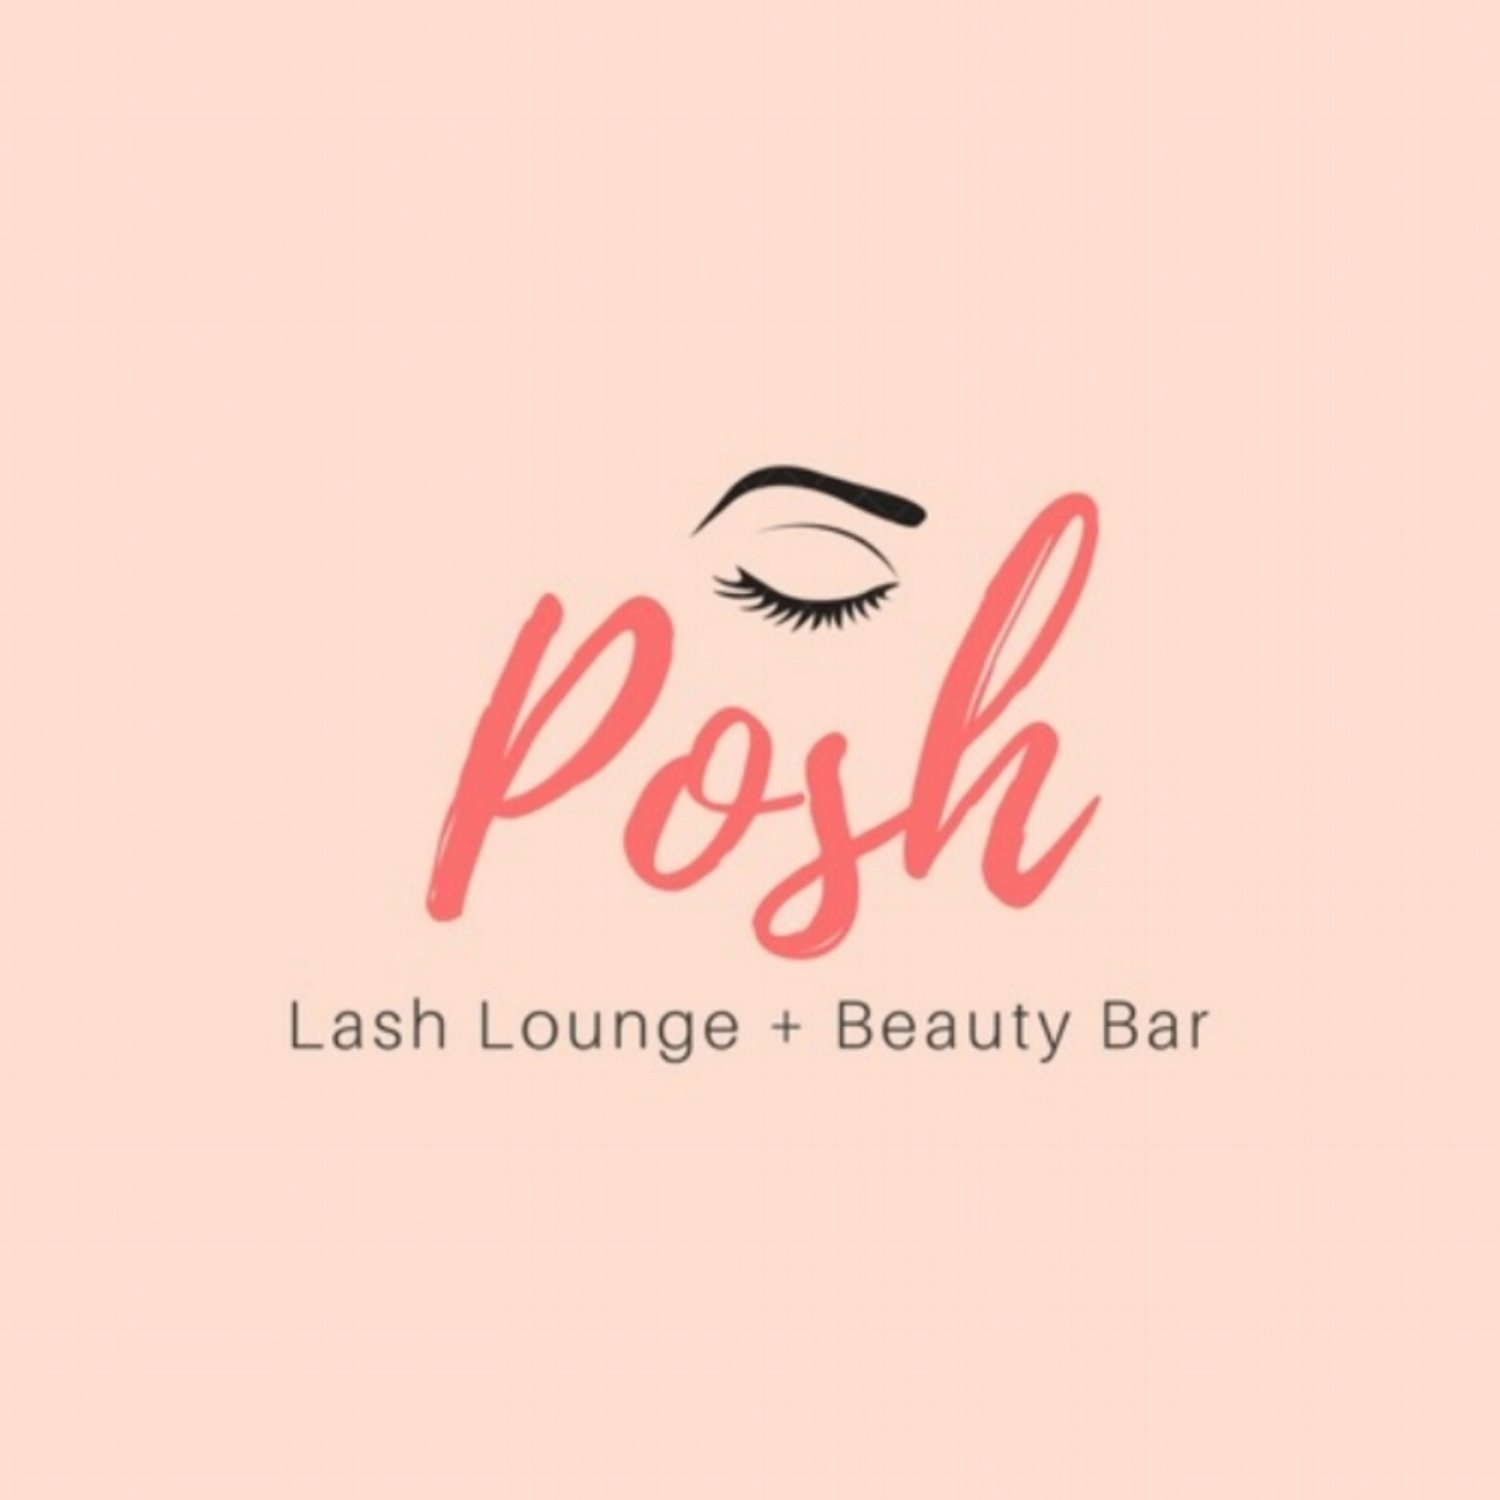 Posh Lash Lounge & Beauty Bar